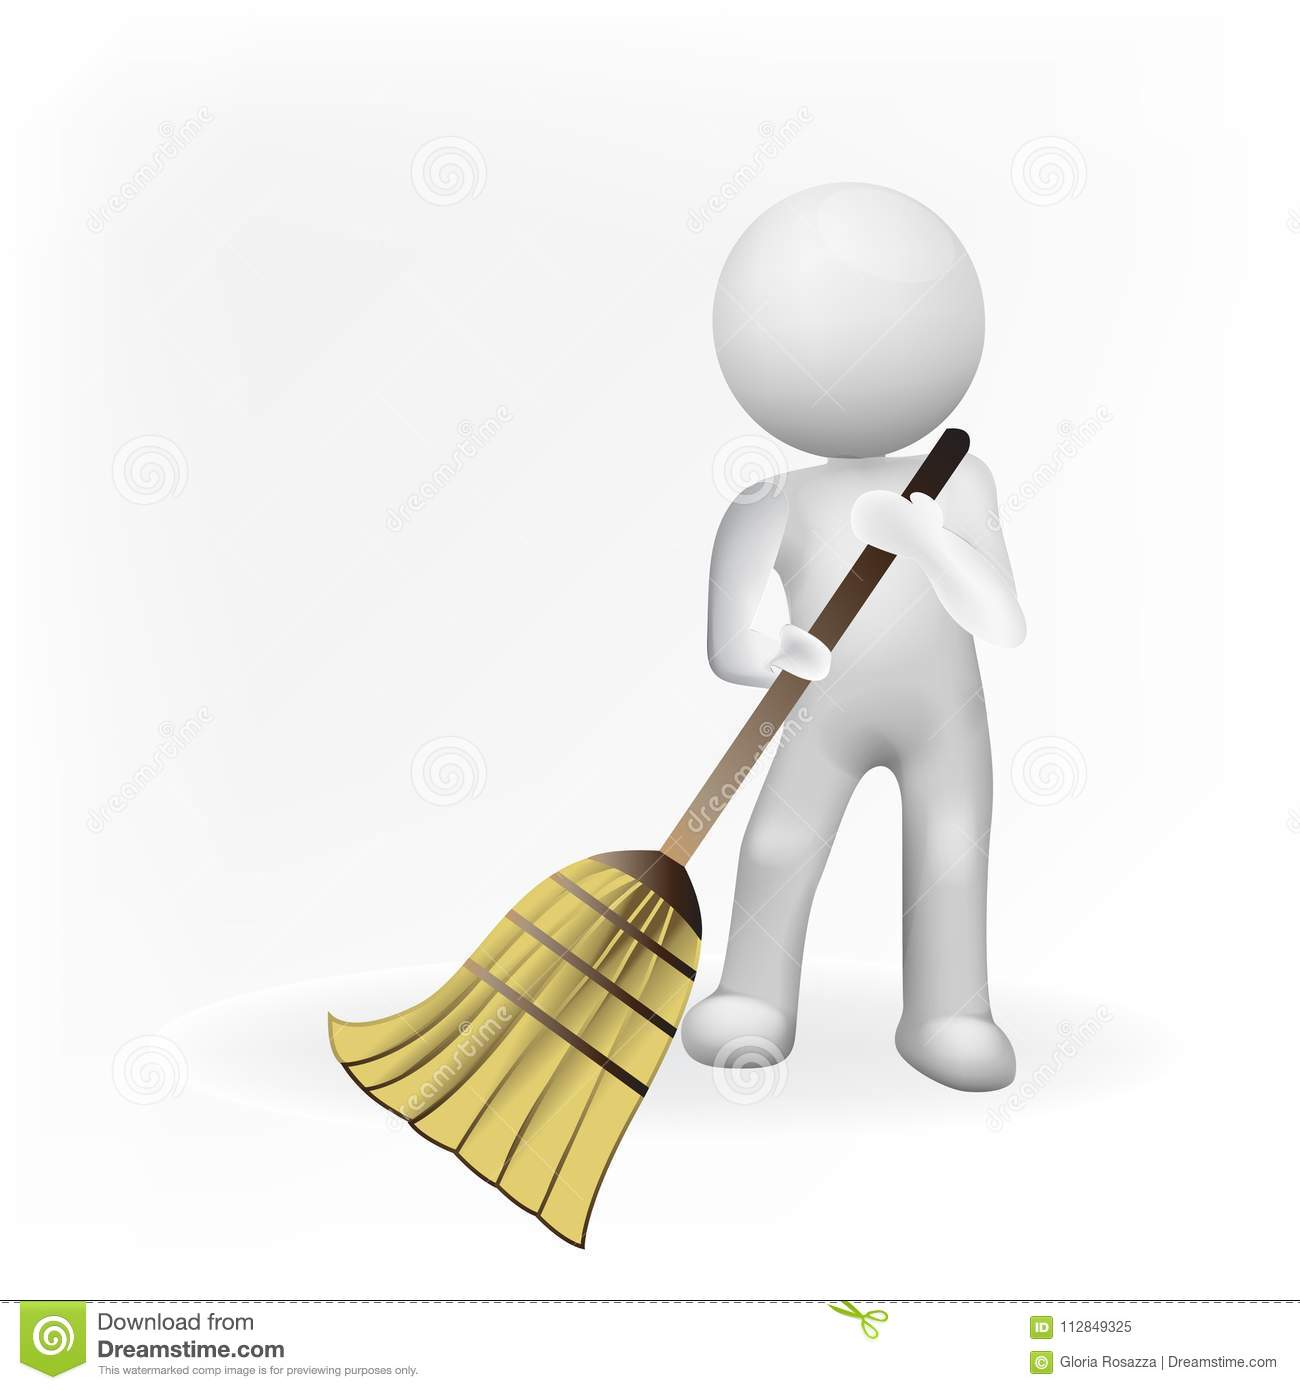 janitorial cartoons  illustrations  u0026 vector stock images